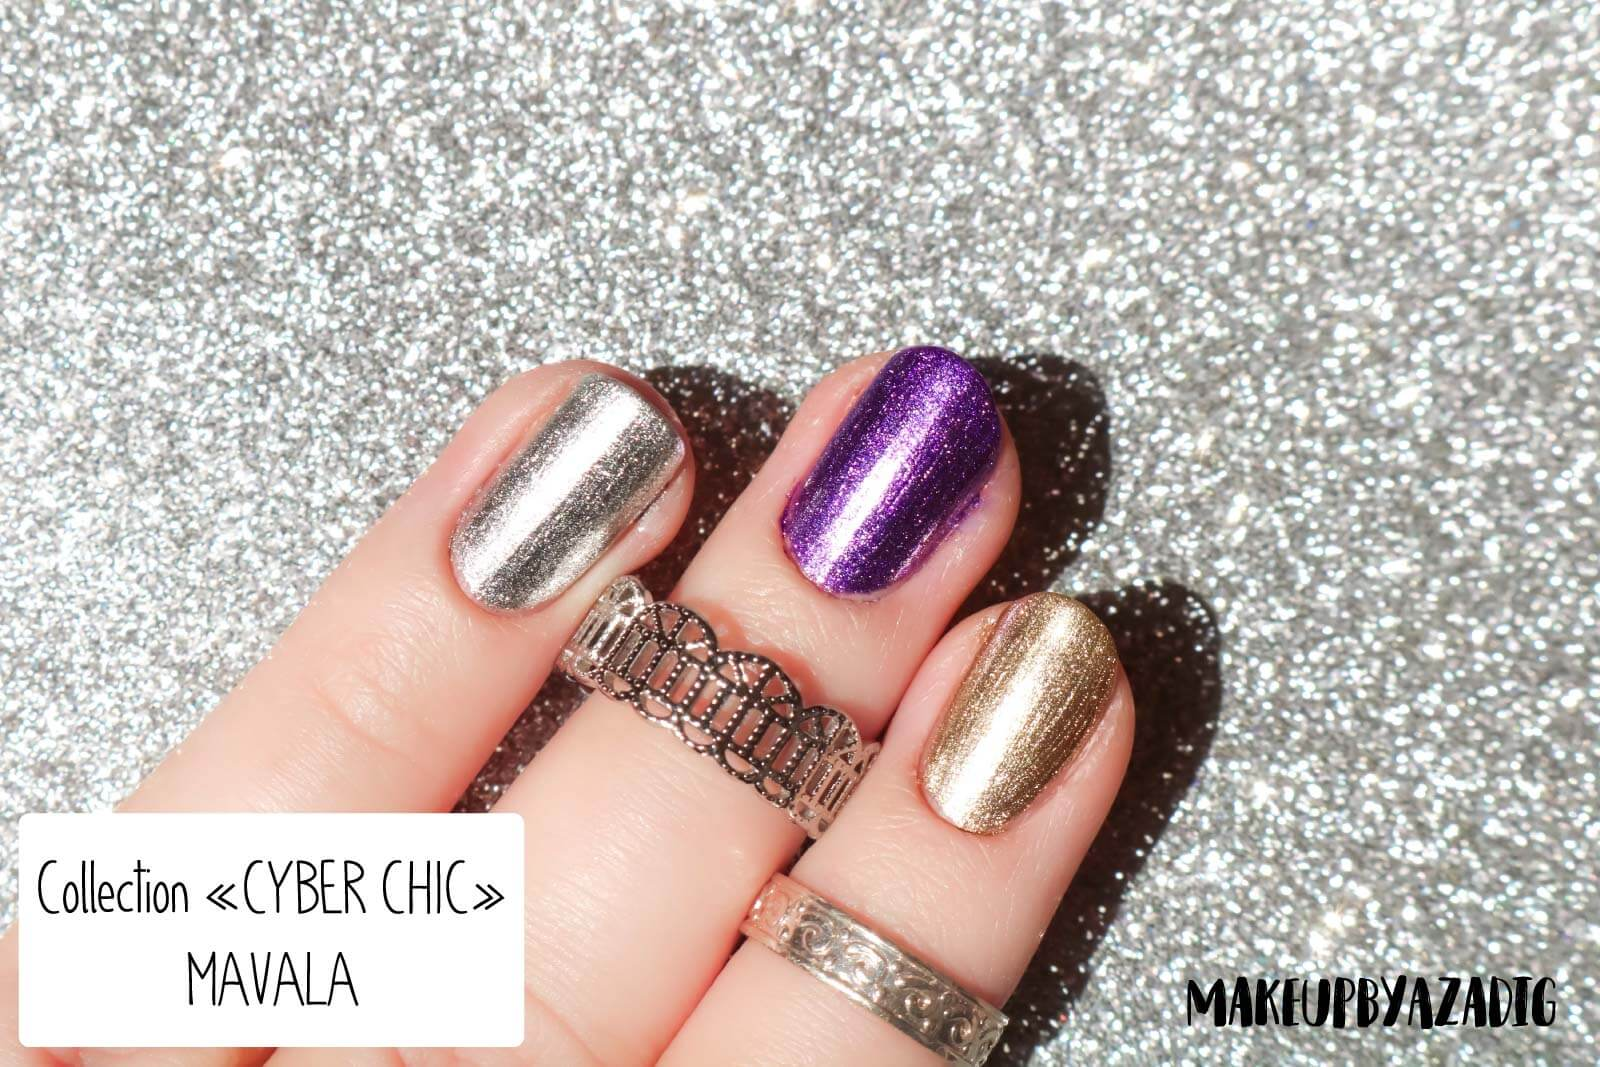 revue-collection-vernis-cyber-chic-fetes-noel-metallique-gold-silver-makeupbyazadig-swatch-avis-prix-swatches